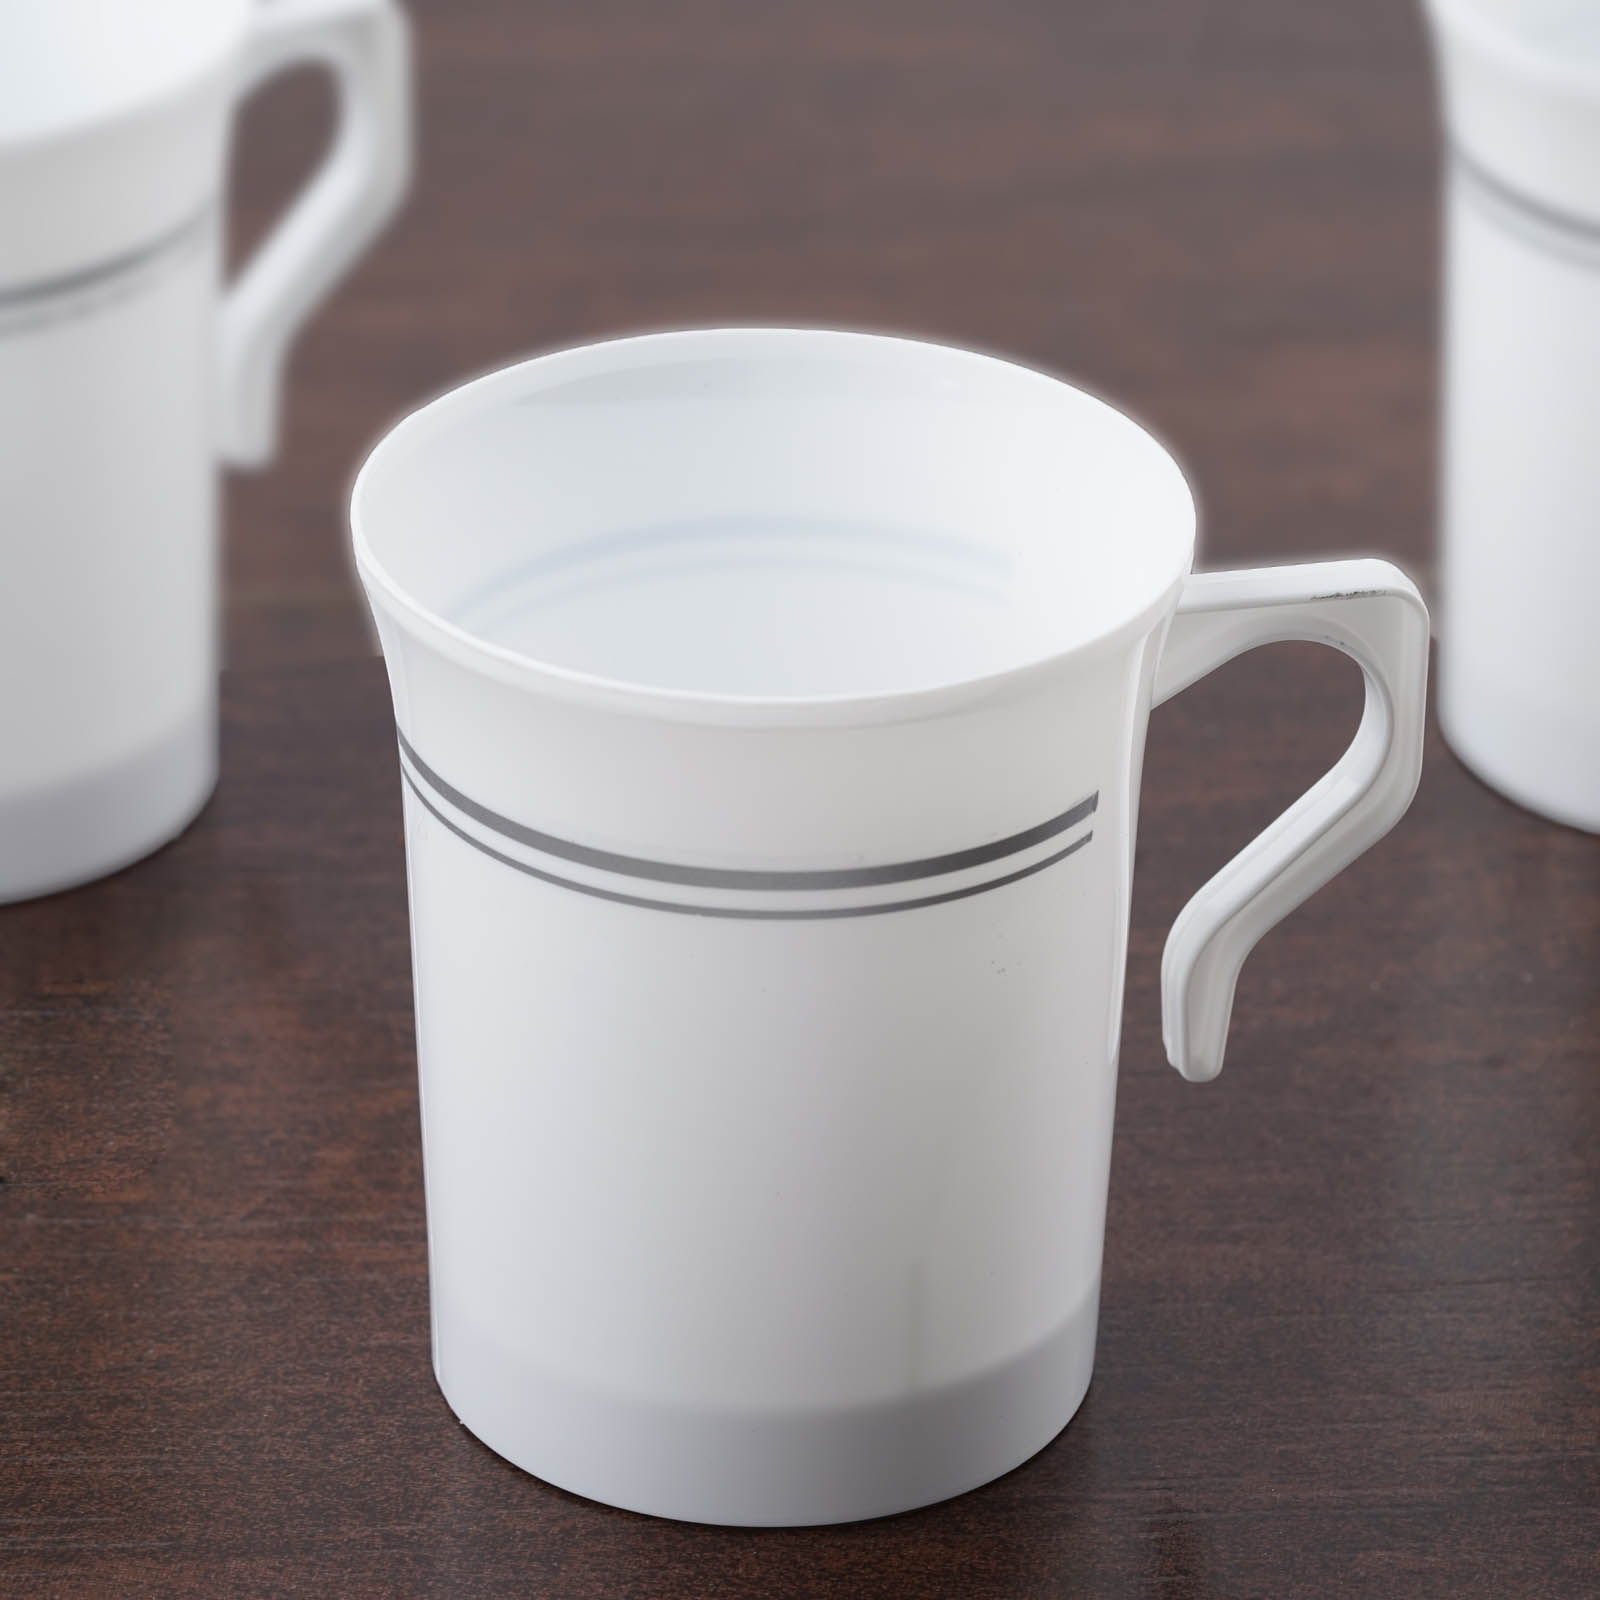 Efavormart 40 Pcs - 8oz Disposable Plastic Coffee Cups for Catering Wedding Birthday Party Banquet Events - Tres Chic Collection